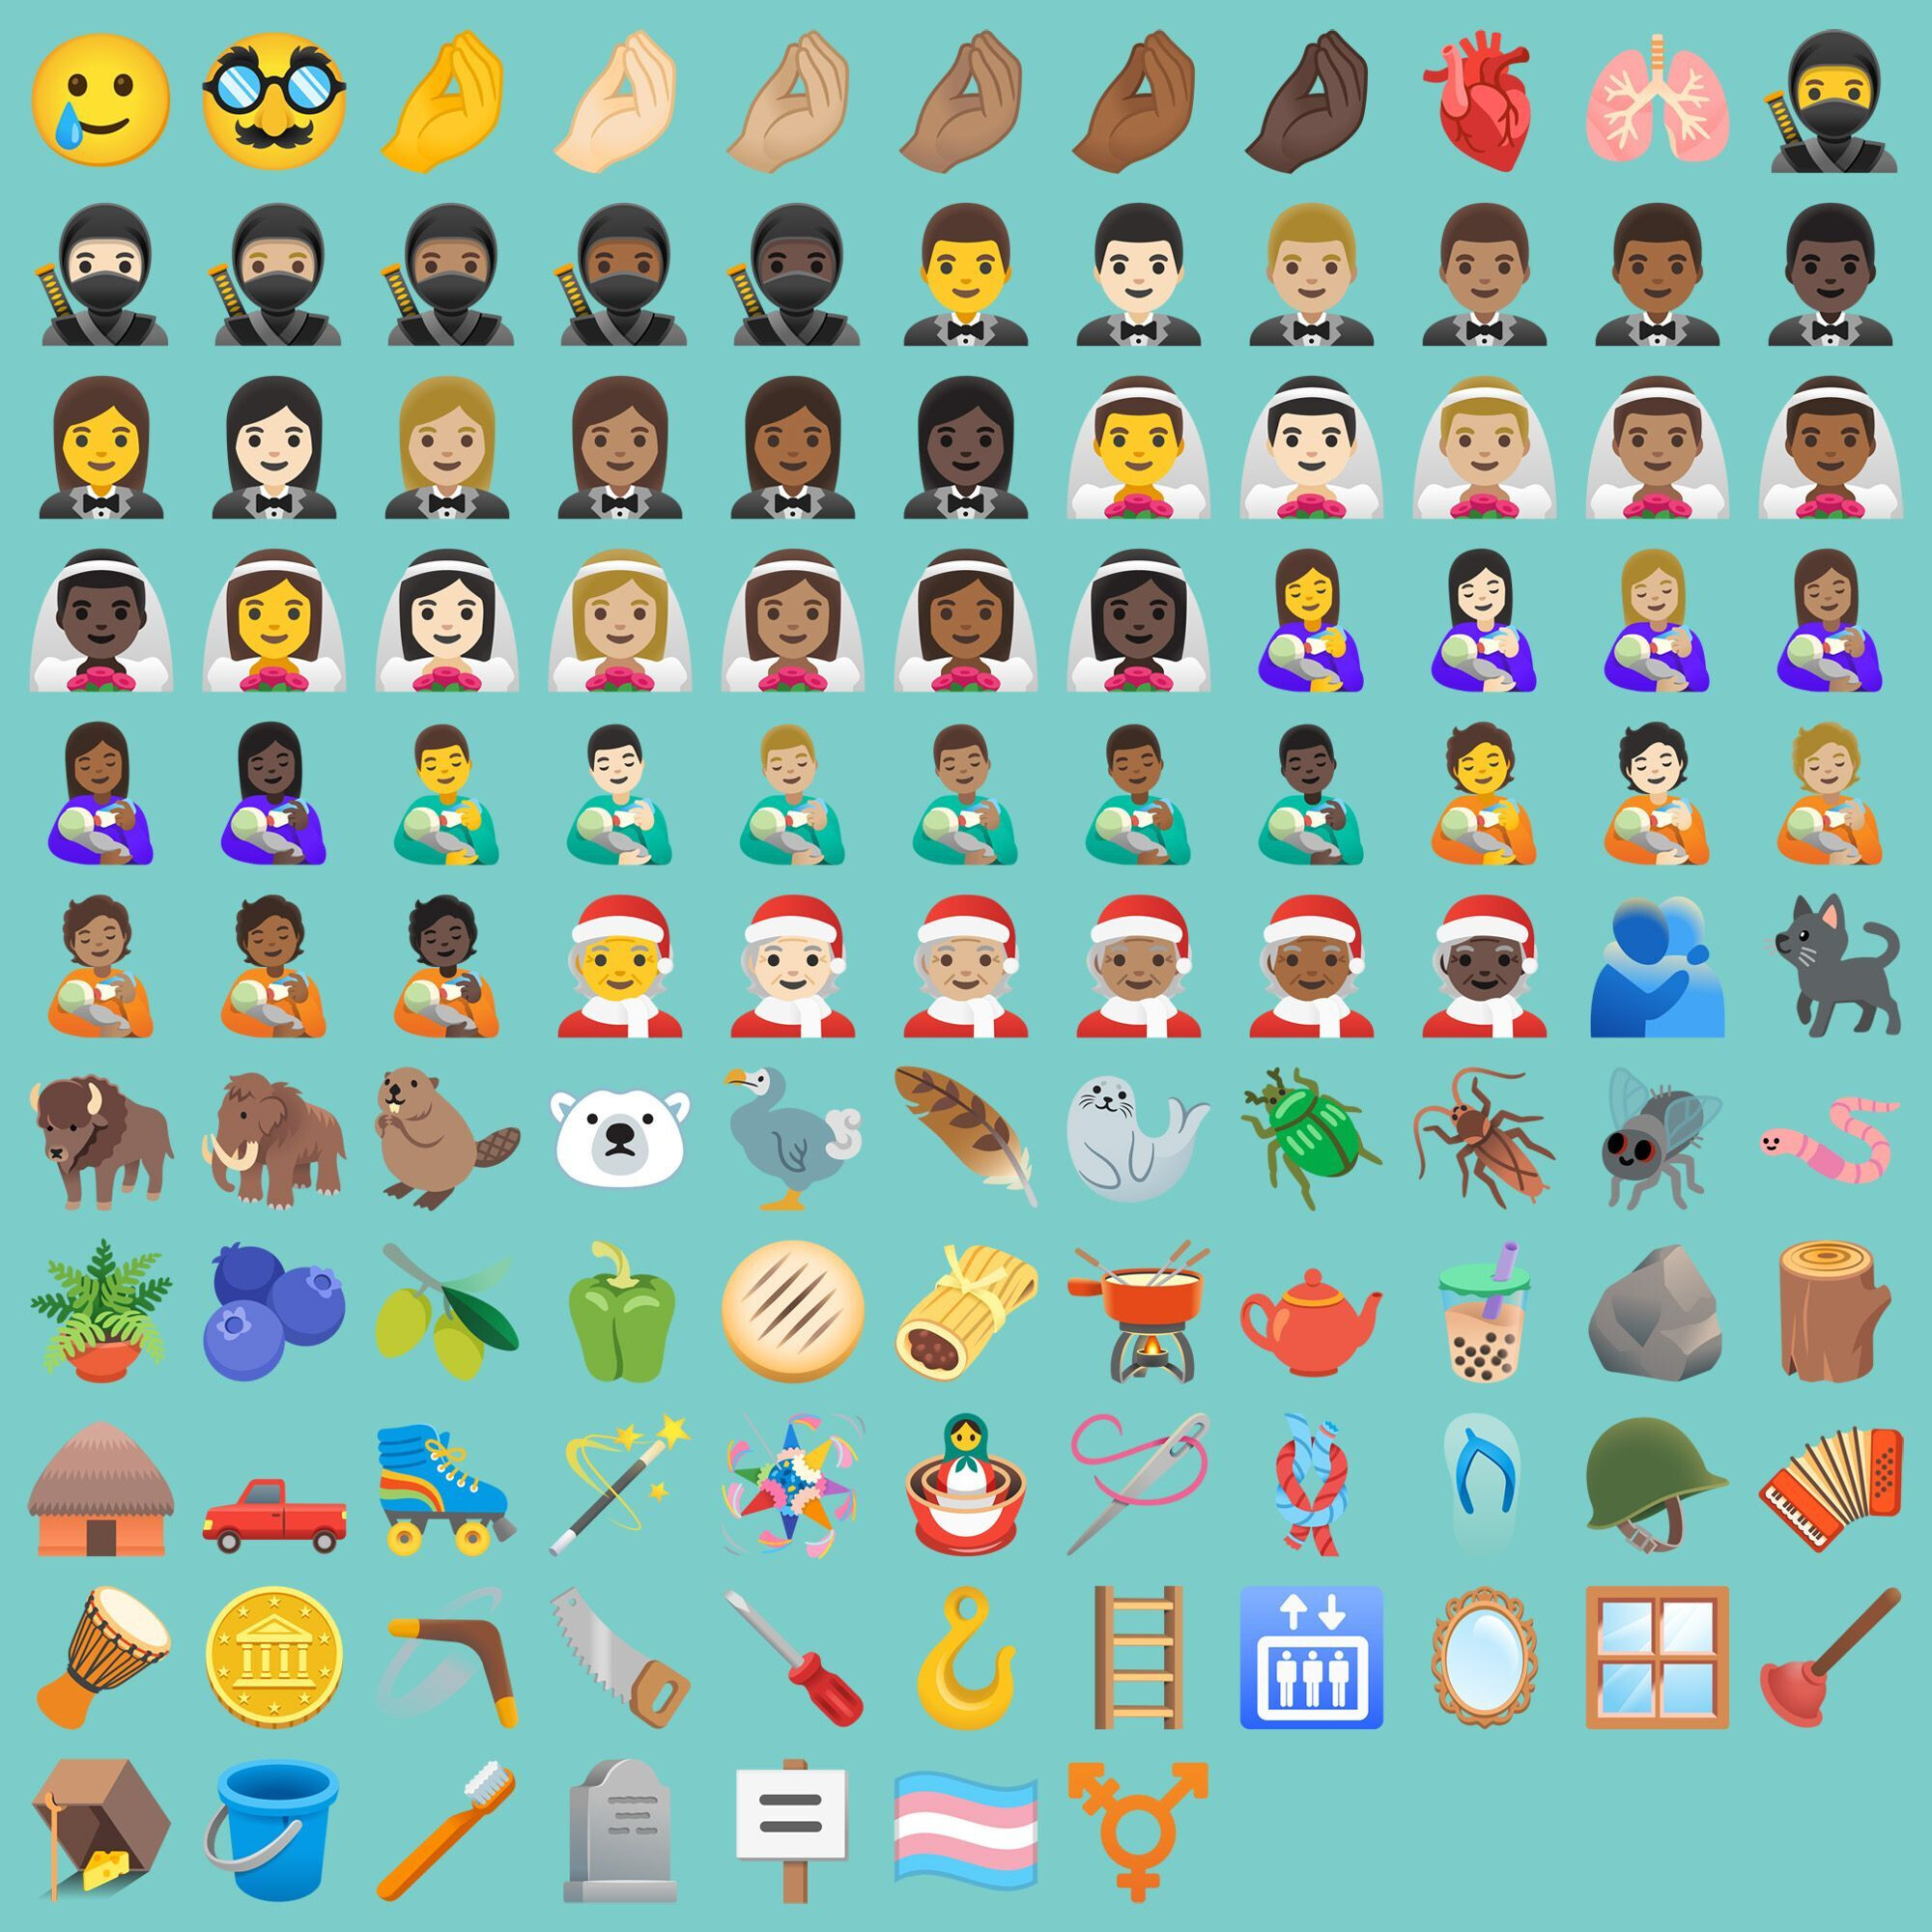 All new Android 11 emoji - These are all the new Android 11 emoji coming to your phone